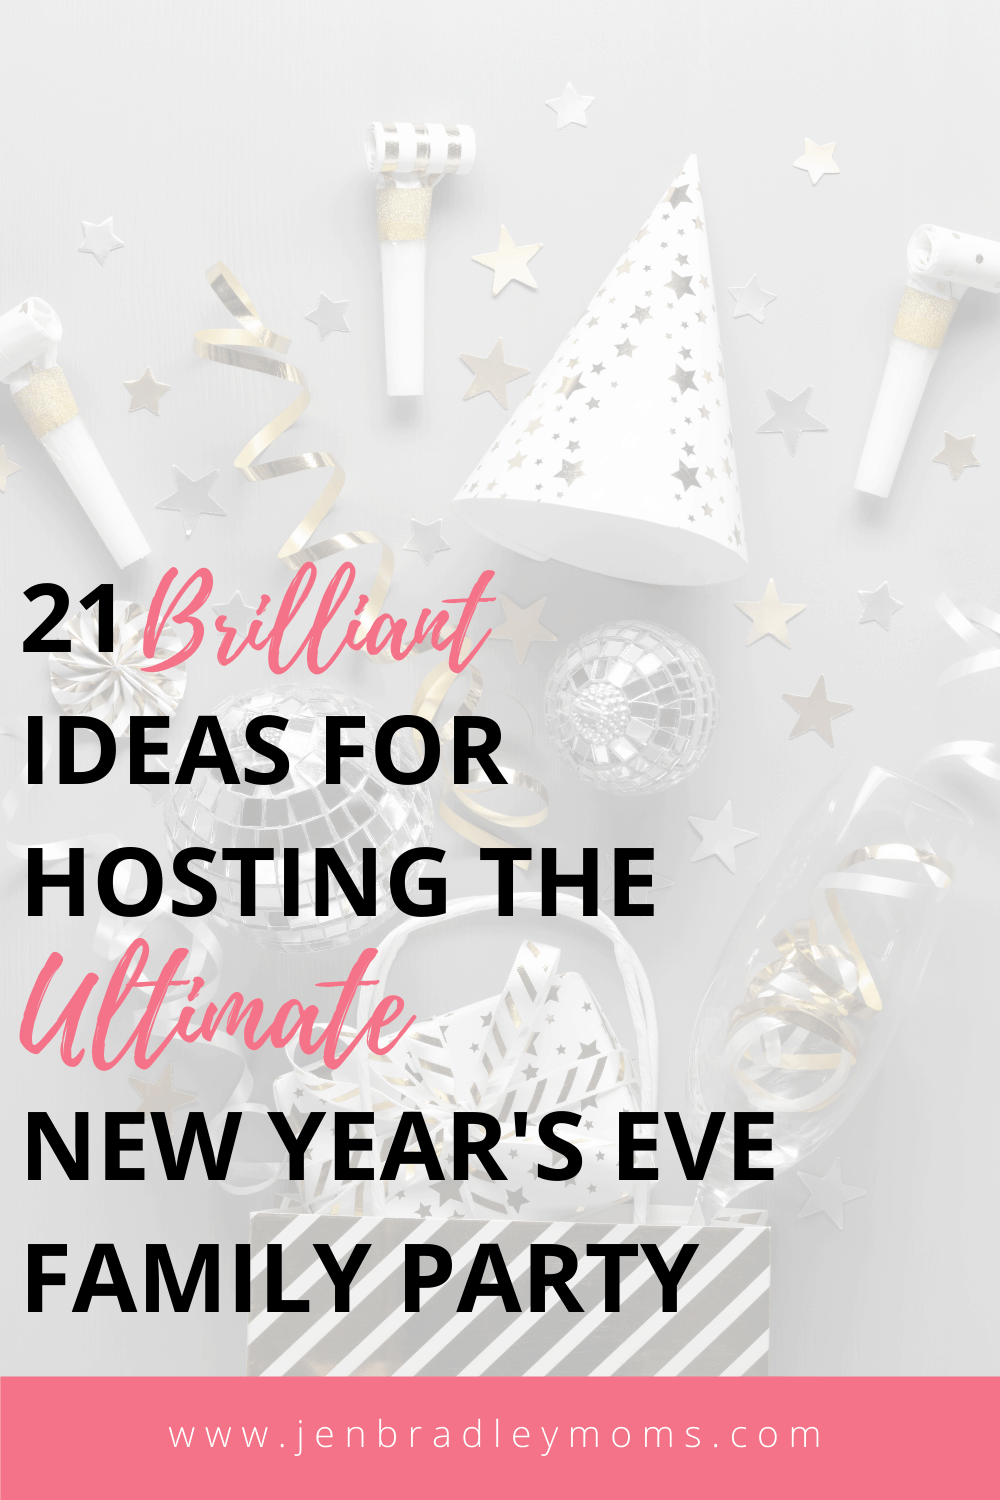 21 Brilliant Ideas for Hosting the Ultimate Family New Year\'s Eve Party